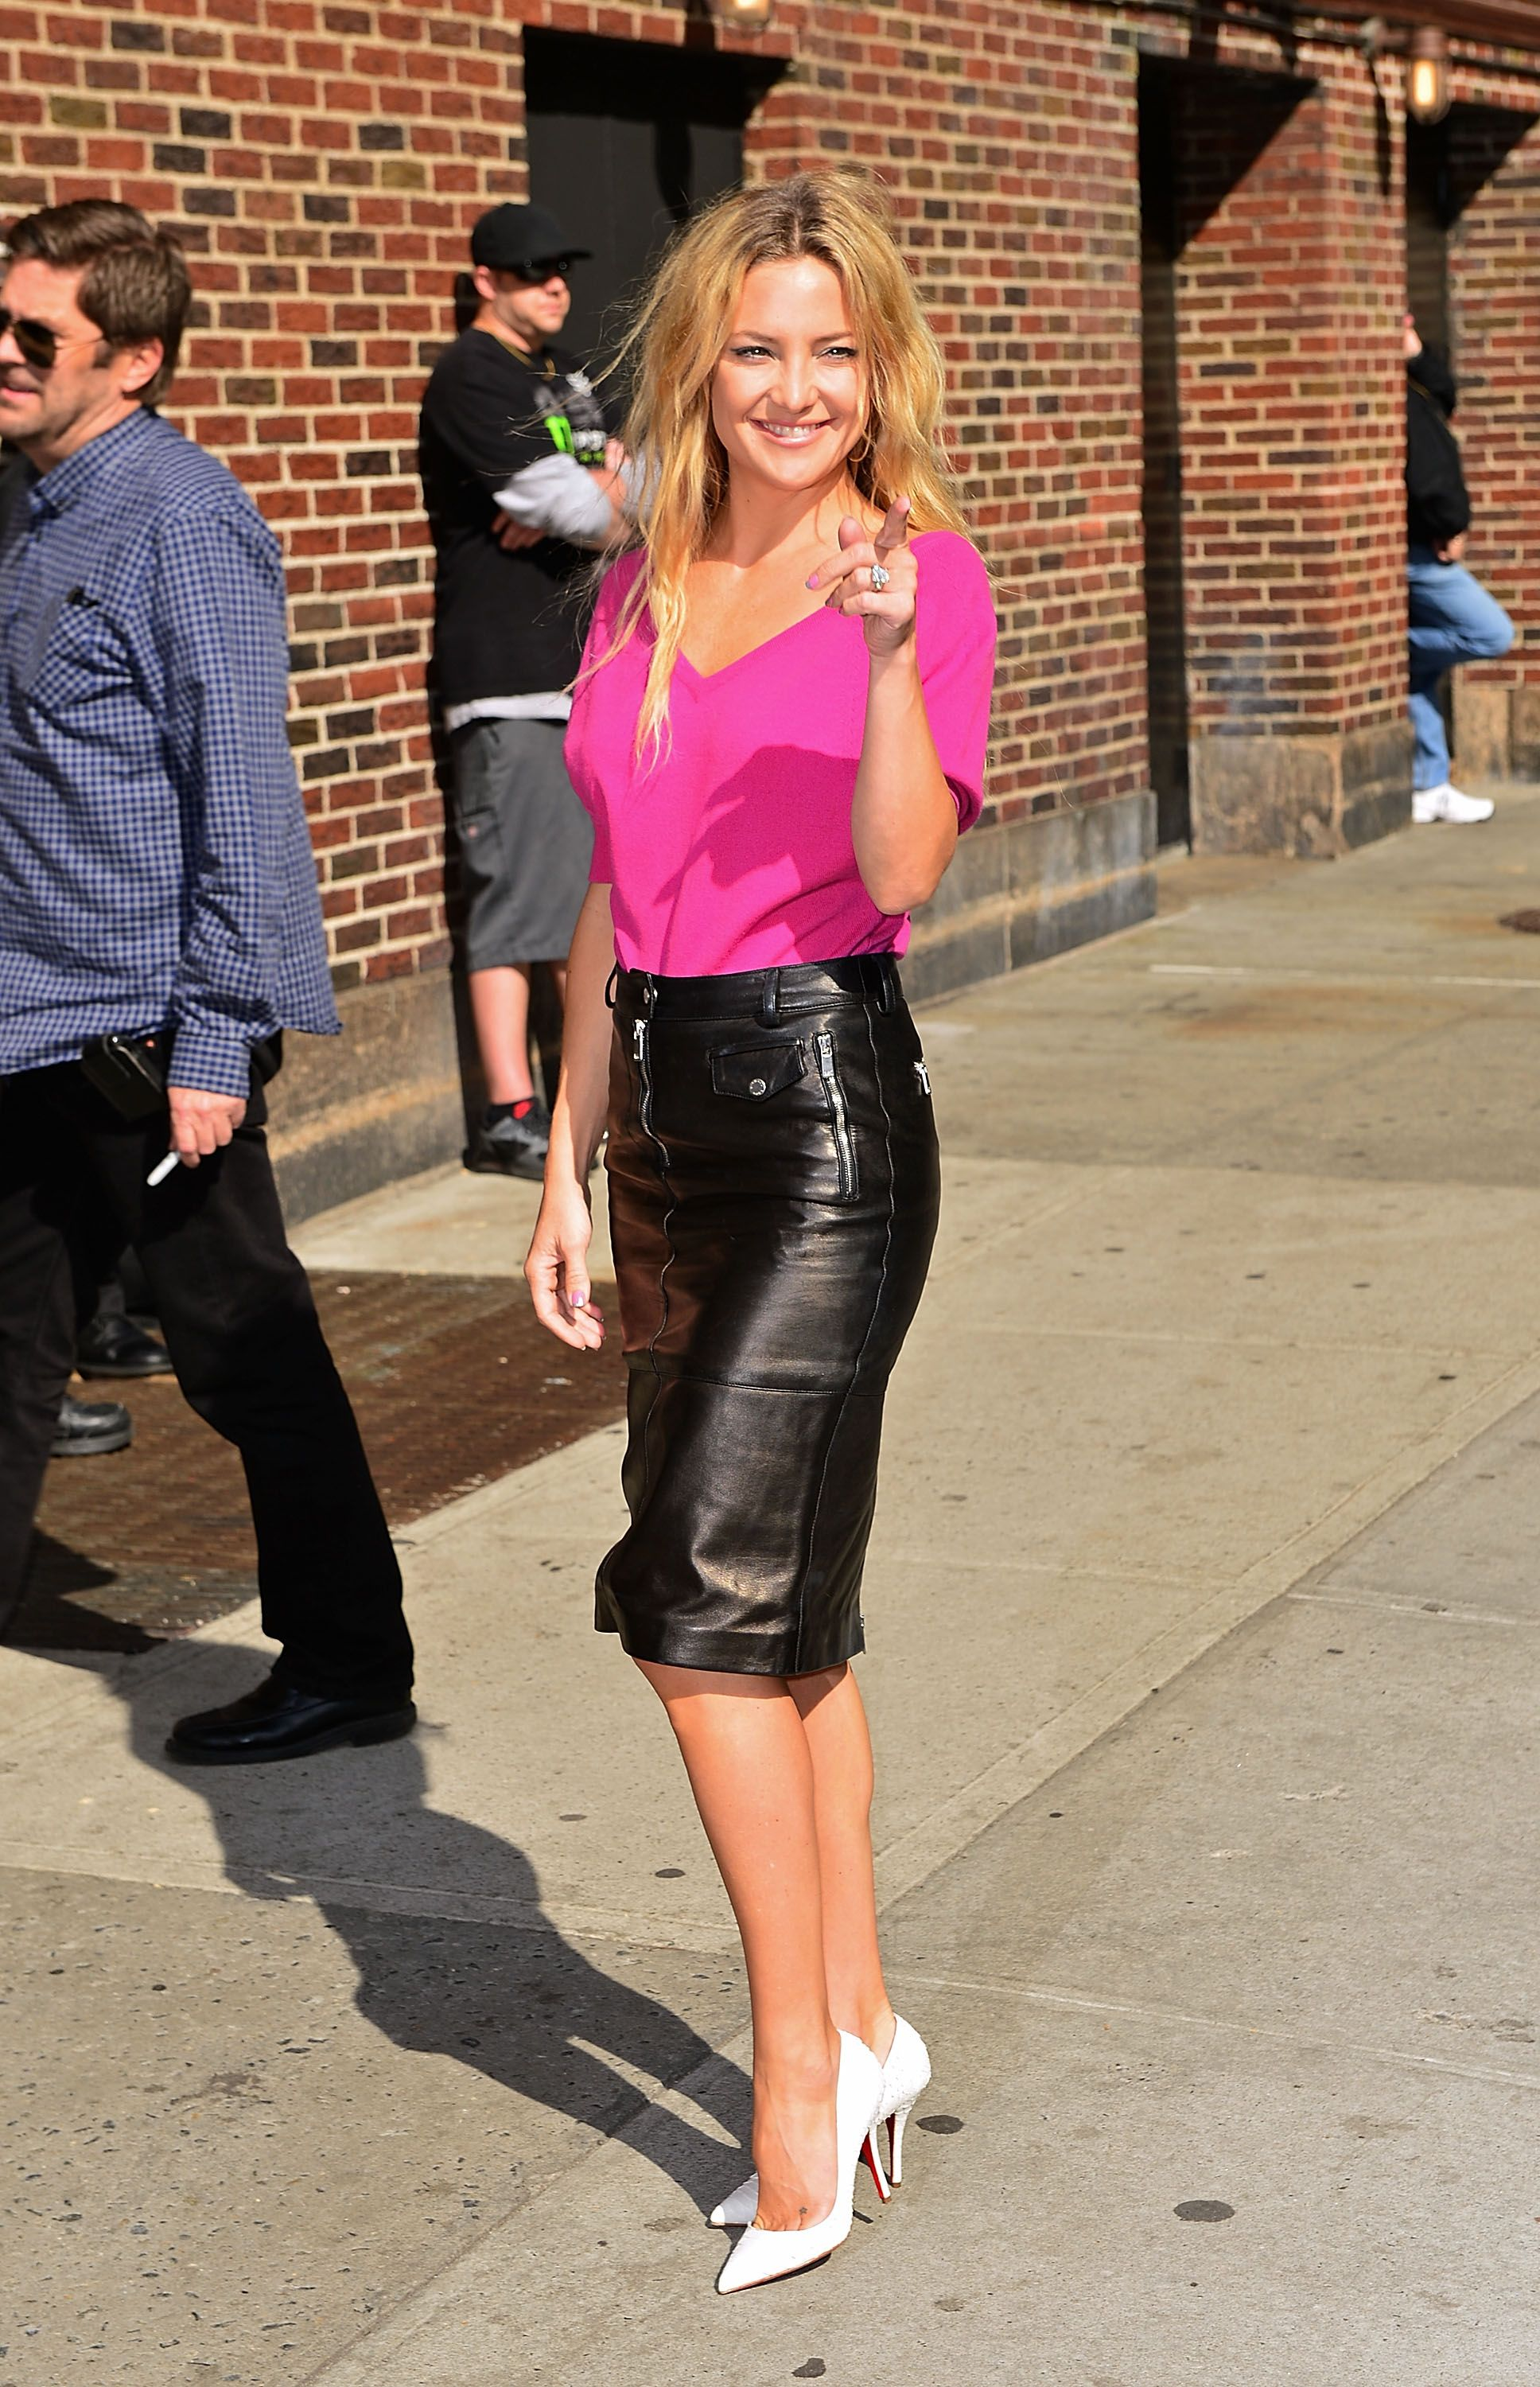 Kate Hudson wore a bright pink top and black leather skirt and white pumps  for her appearance on The Late Show in NYC. 9f0369f33